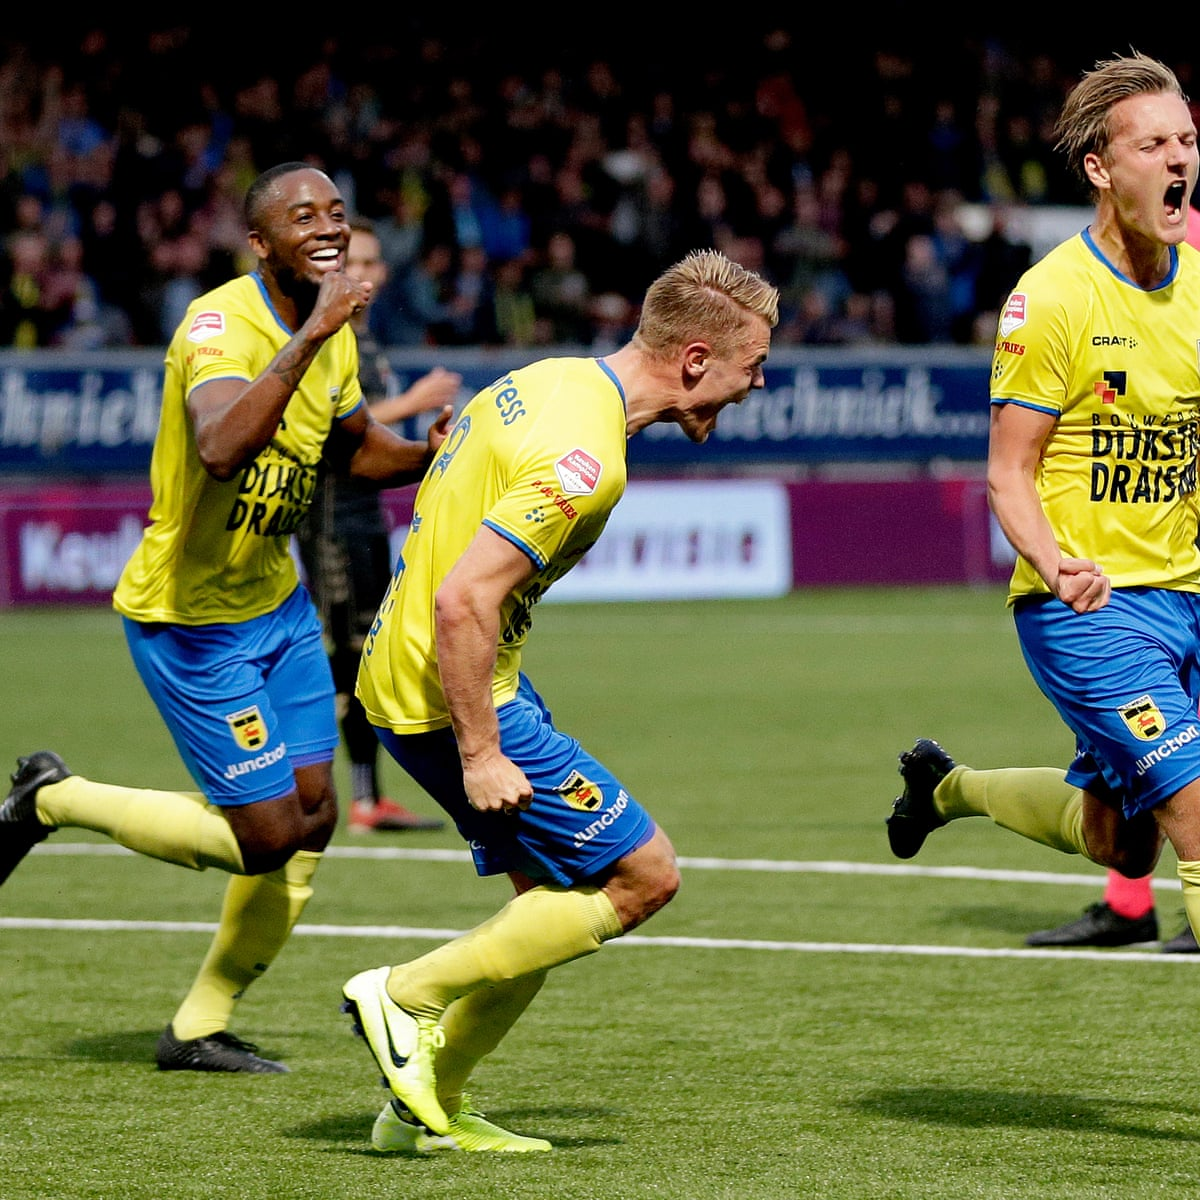 This Is Horrible Cambuur Stunned After Dream Season Turns To Dust Eredivisie The Guardian